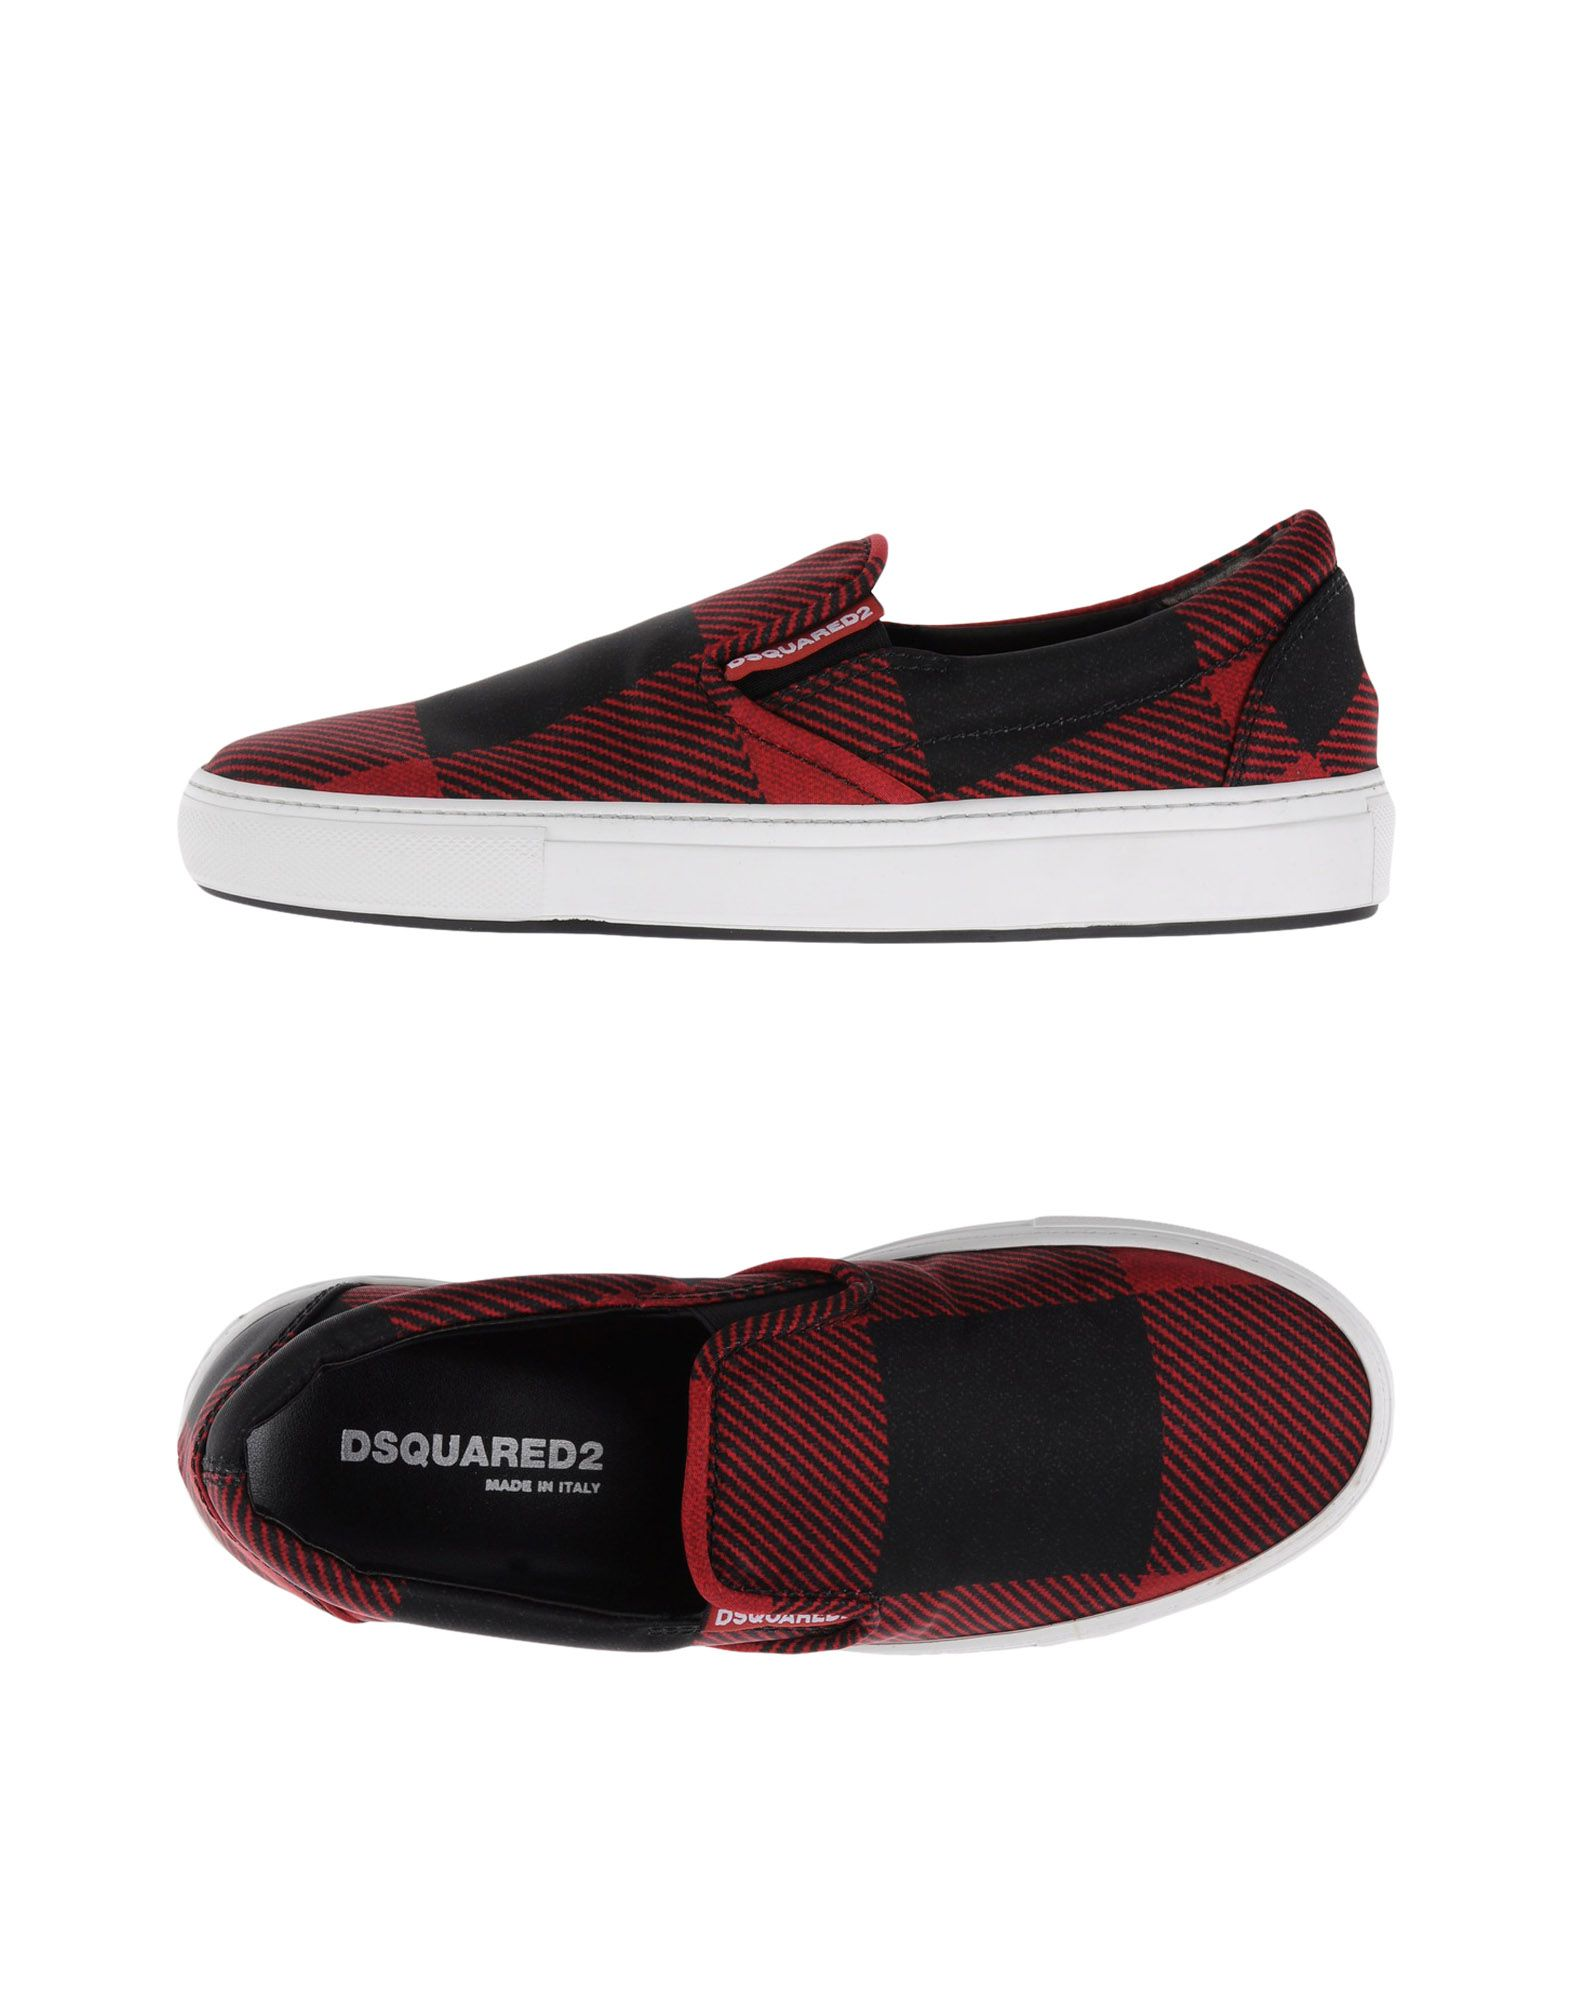 Dsquared2 Sneakers - Men Dsquared2 United Sneakers online on  United Dsquared2 Kingdom - 11161980KI 45977a